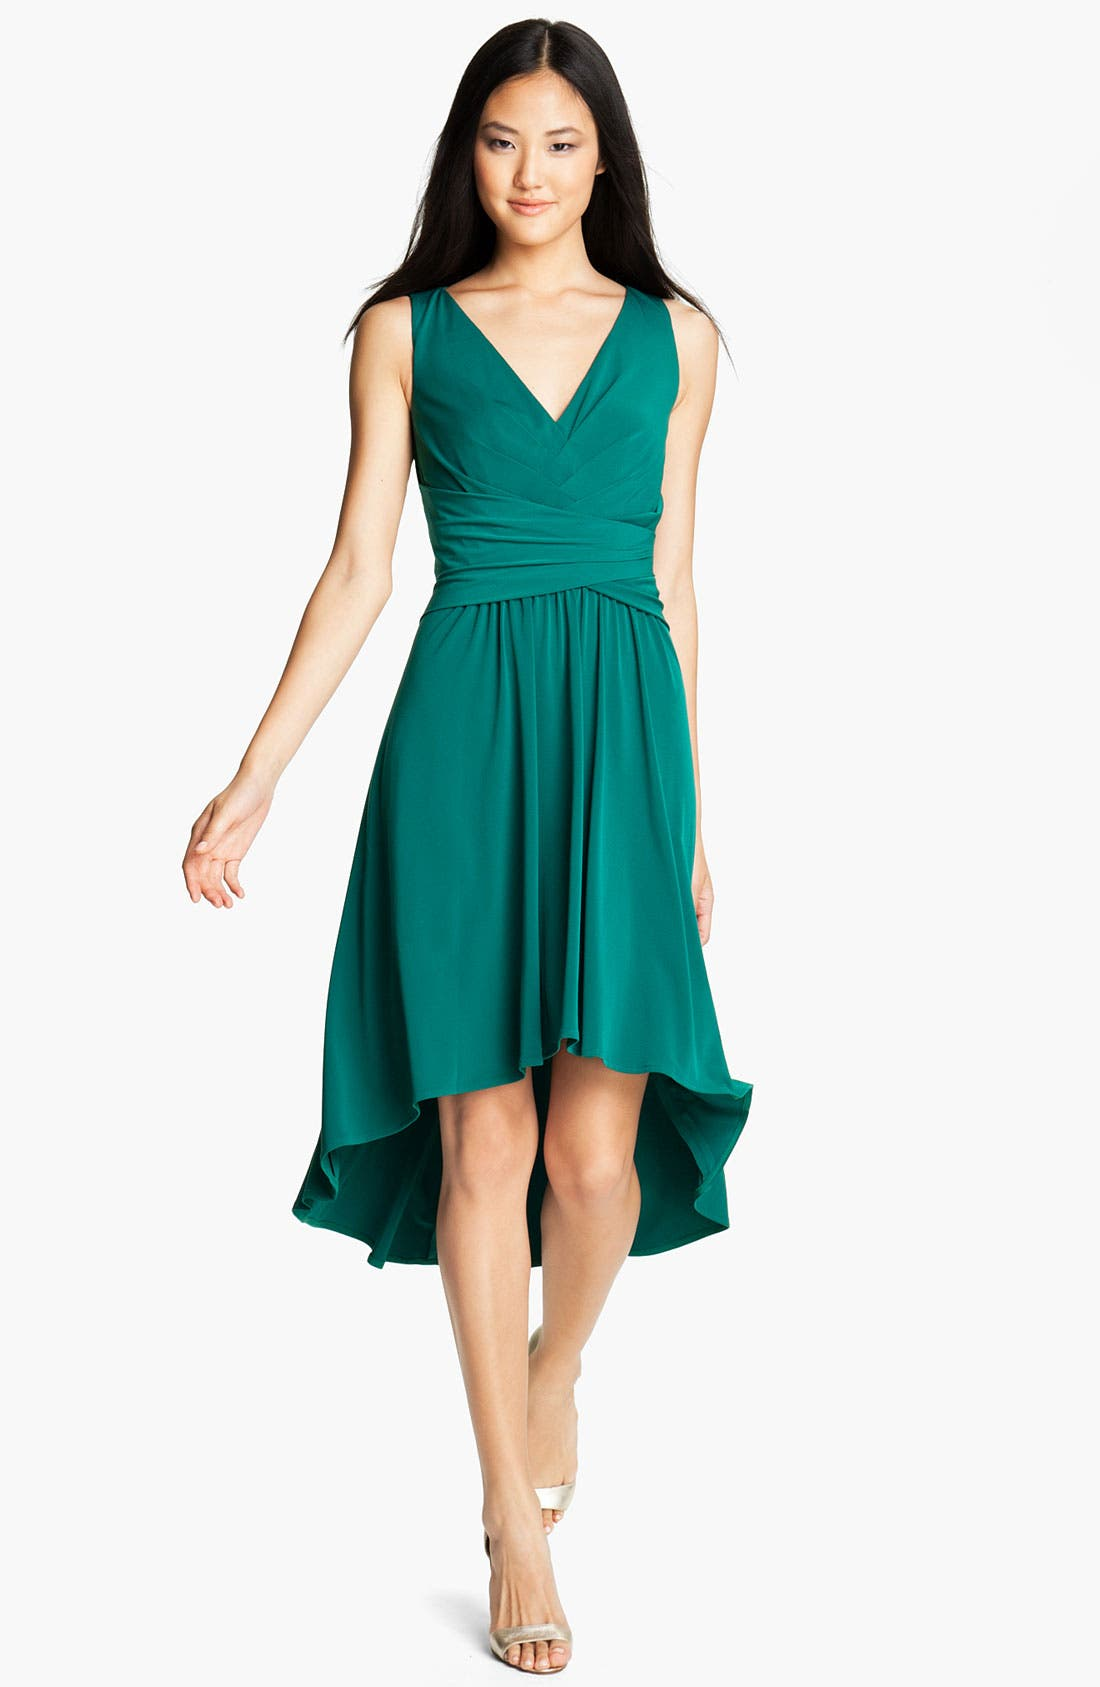 Alternate Image 1 Selected - Suzi Chin for Maggy Boutique Pleated V-Neck Dress (Petite)